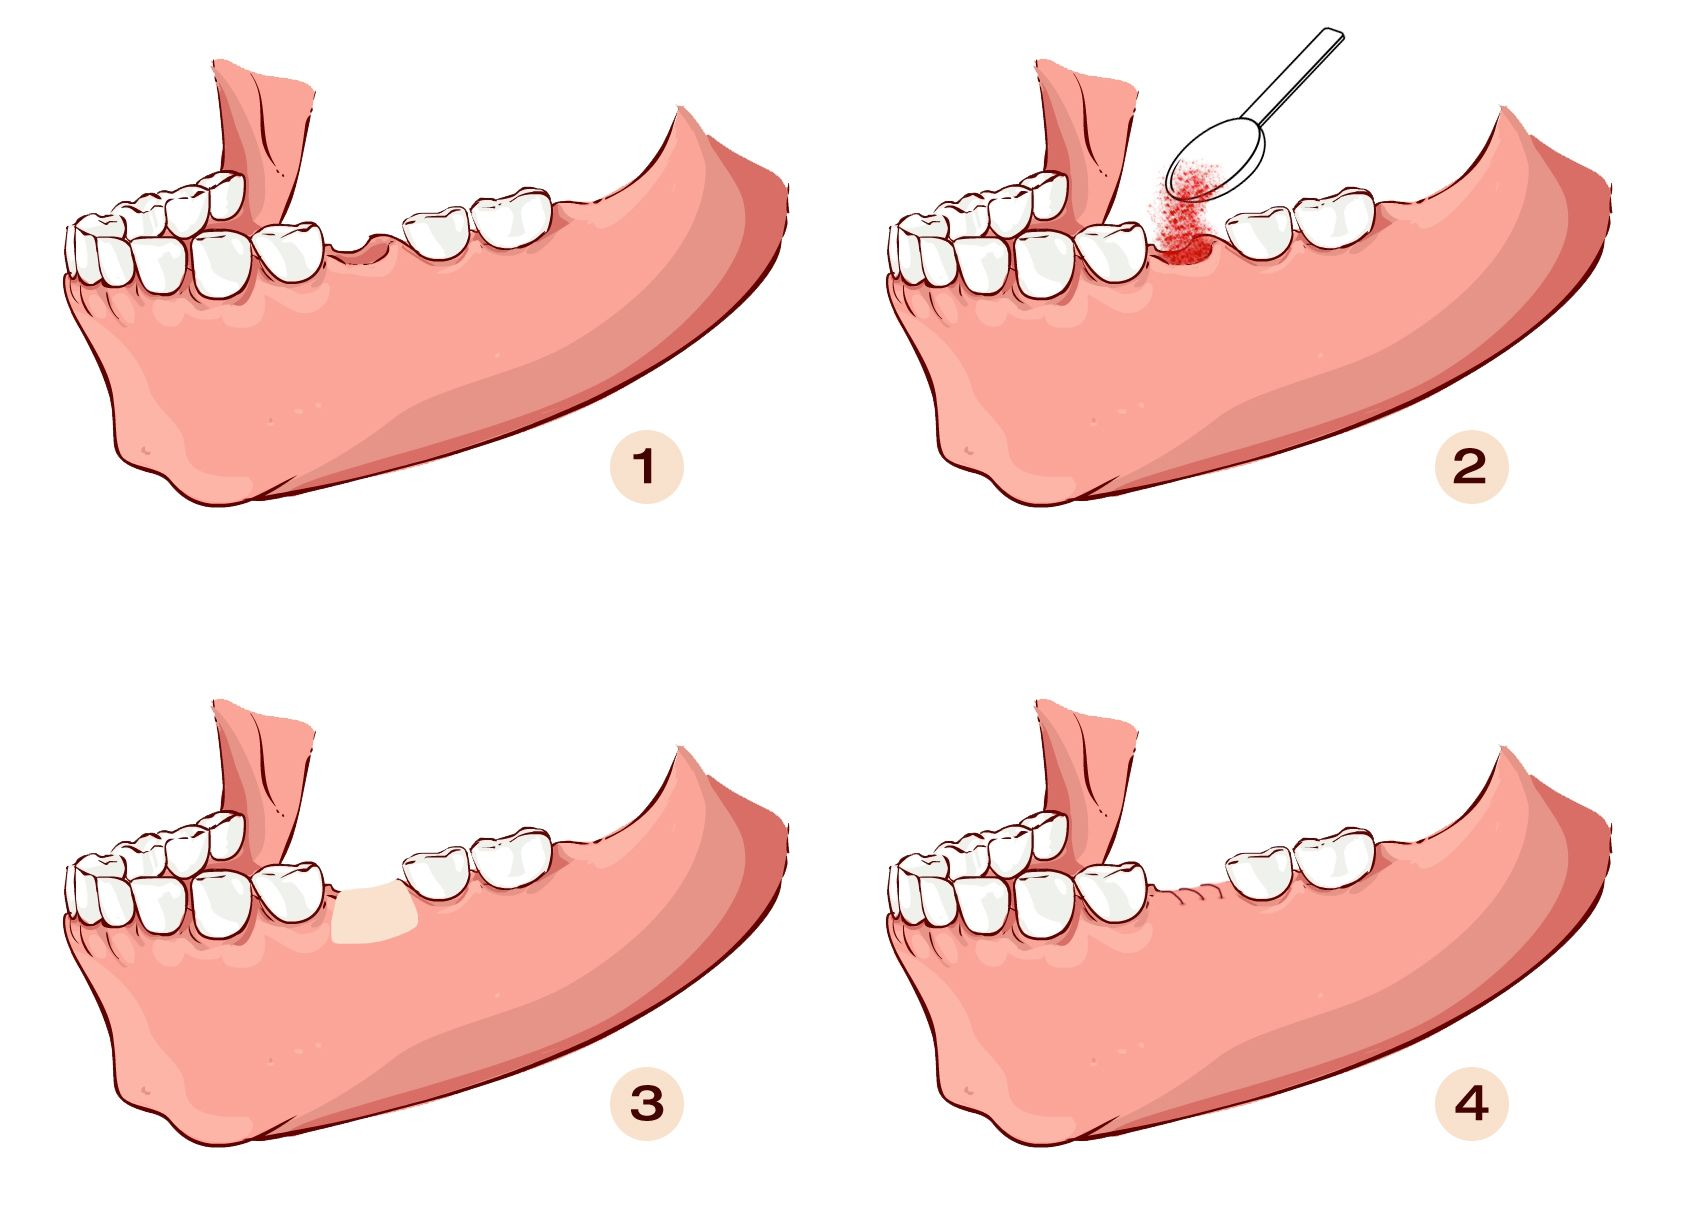 An illustration showing the steps of a bone graft.